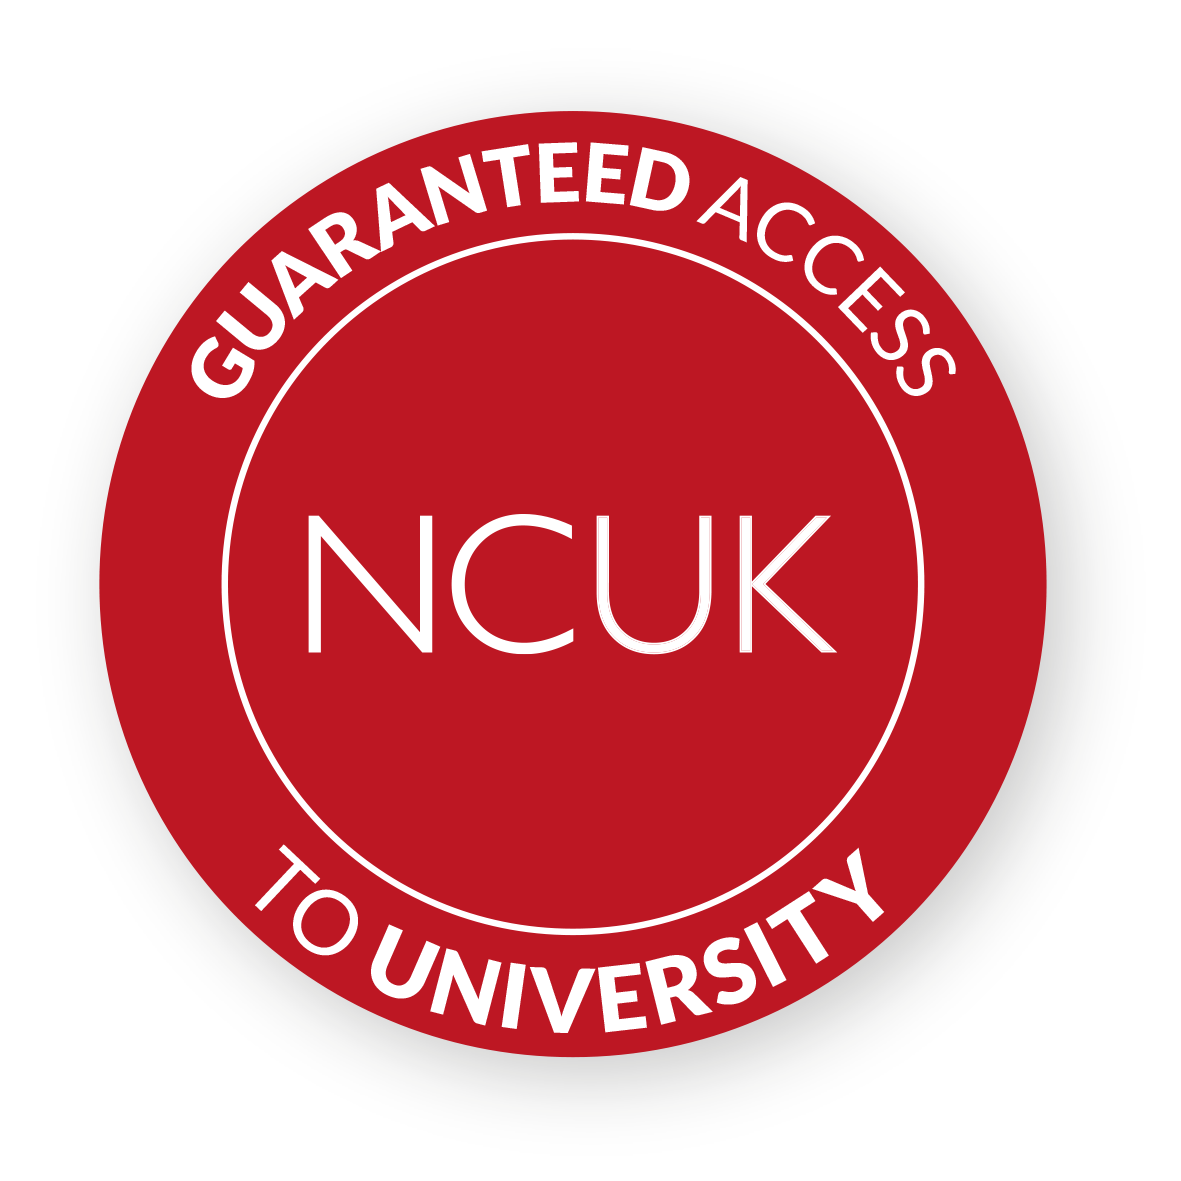 guaranteed access to university NCUK badge